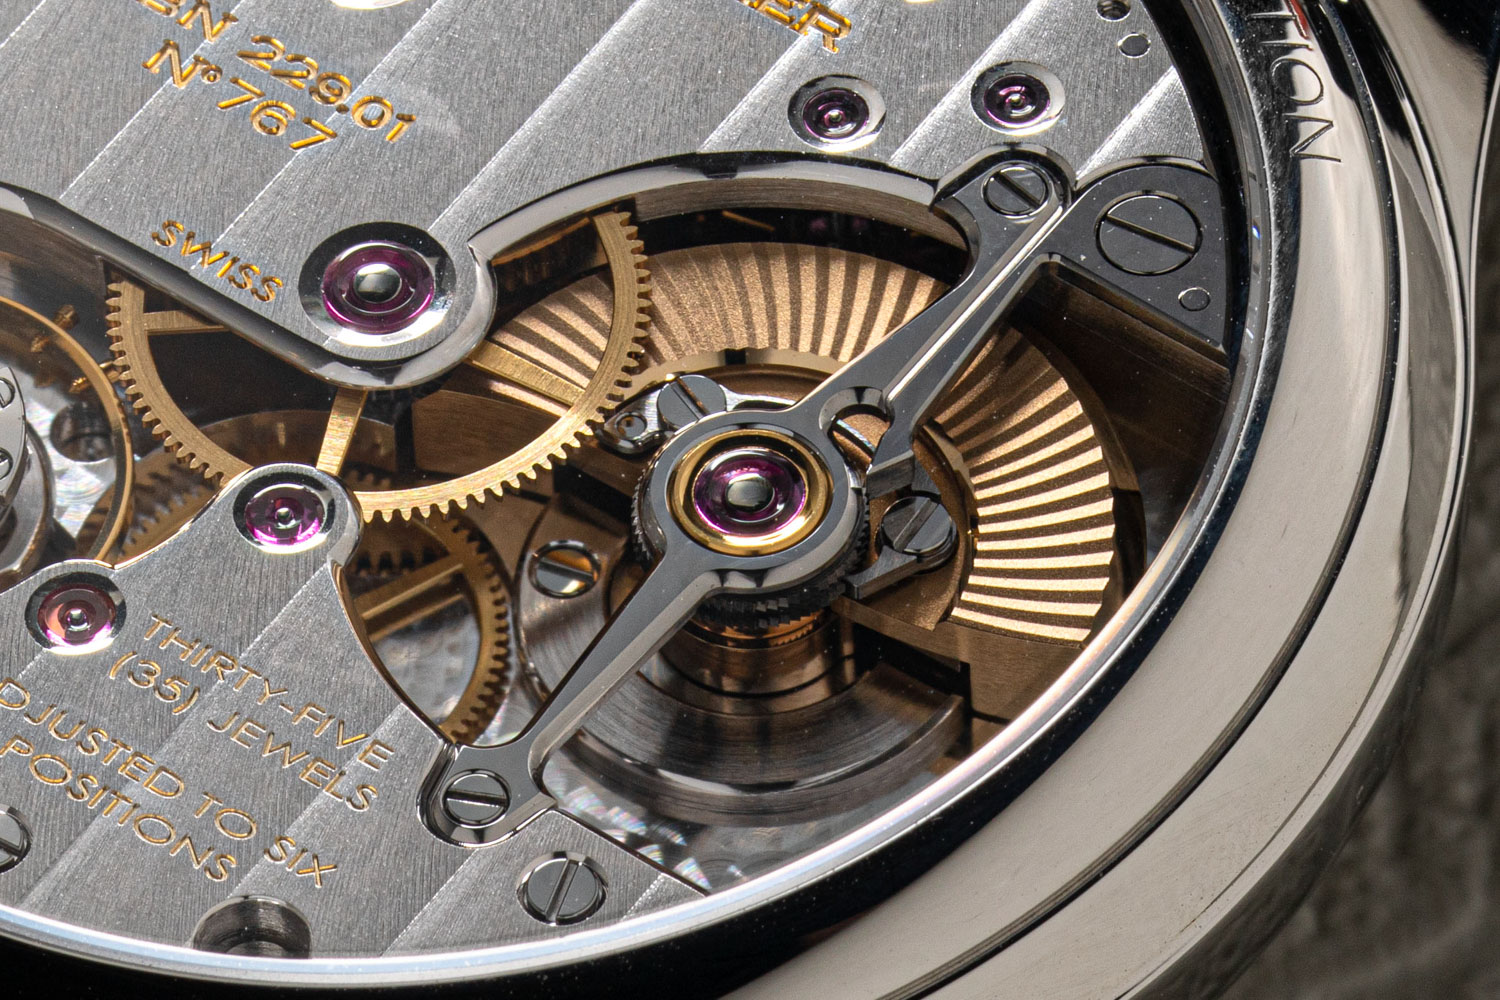 The mirror polished bridge of the FBN 229.01 mirco rotor, fashioned to look like the bridges used for tourbillons in classical watchmaking (©Revolution)